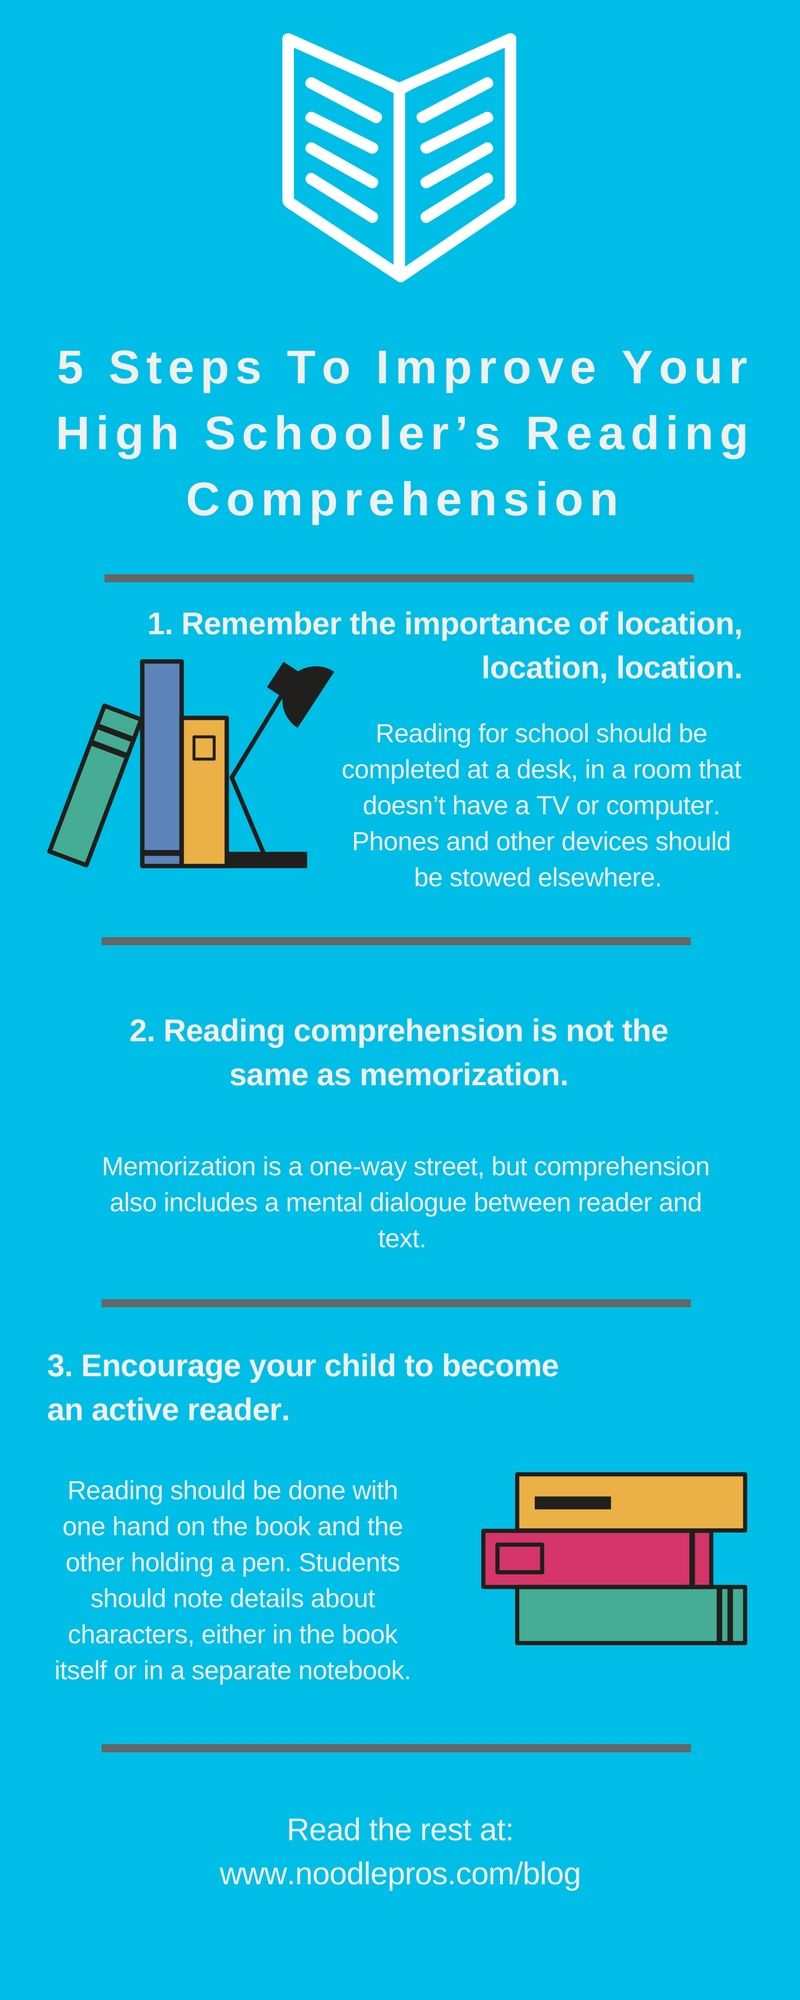 5 Steps To Improve Your High Schooler's Reading